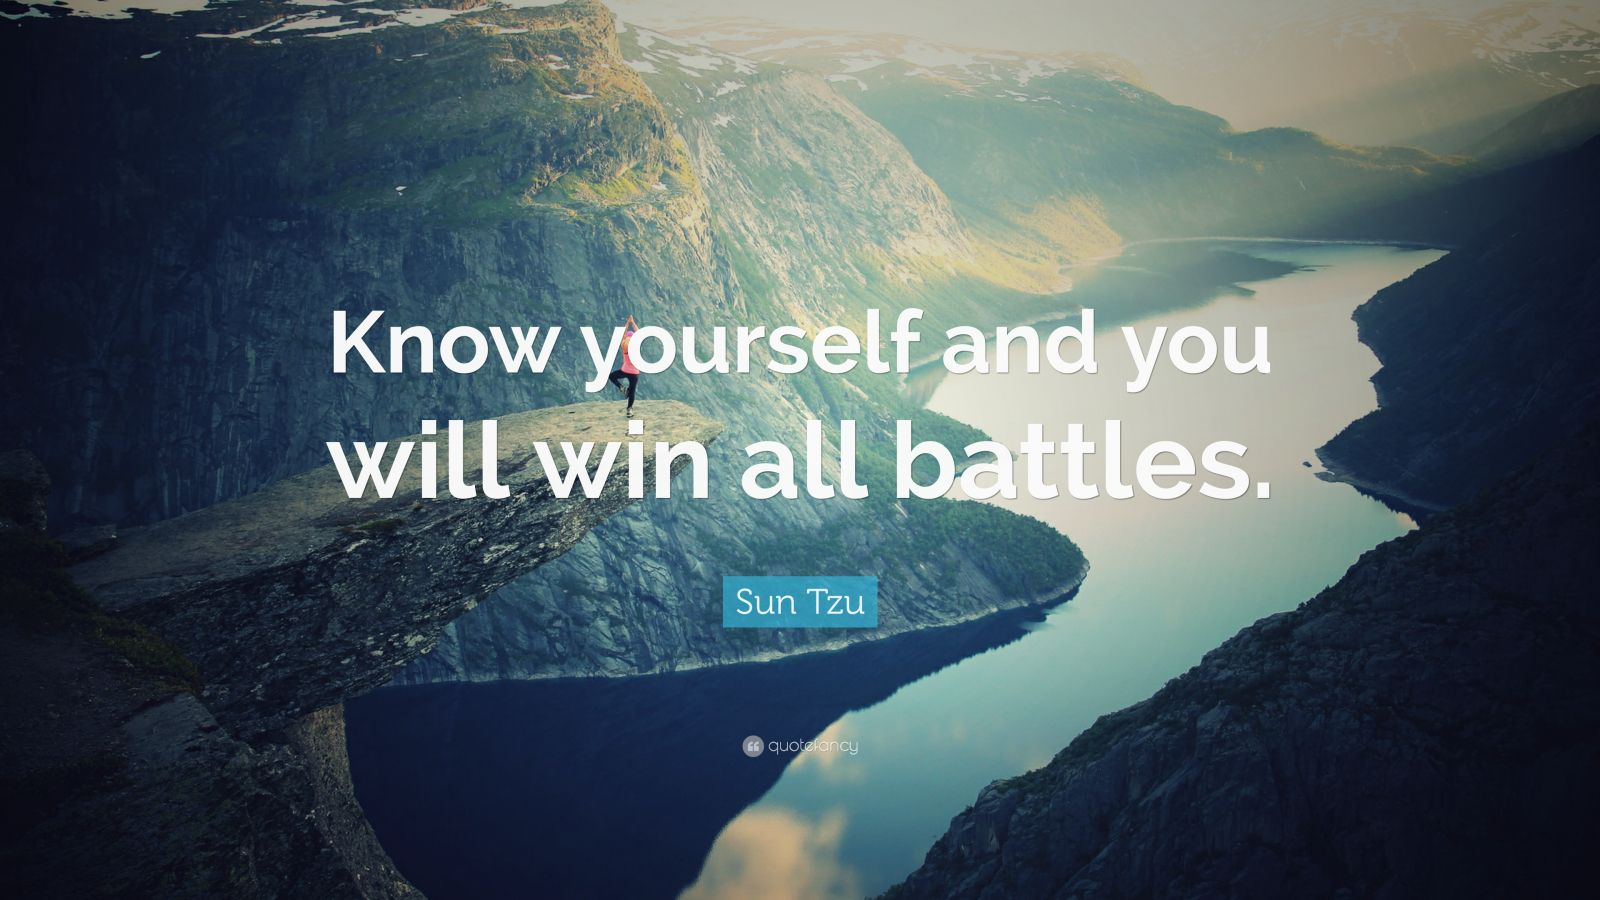 35 Powerful Sun Tzu Quotes from The Art of War